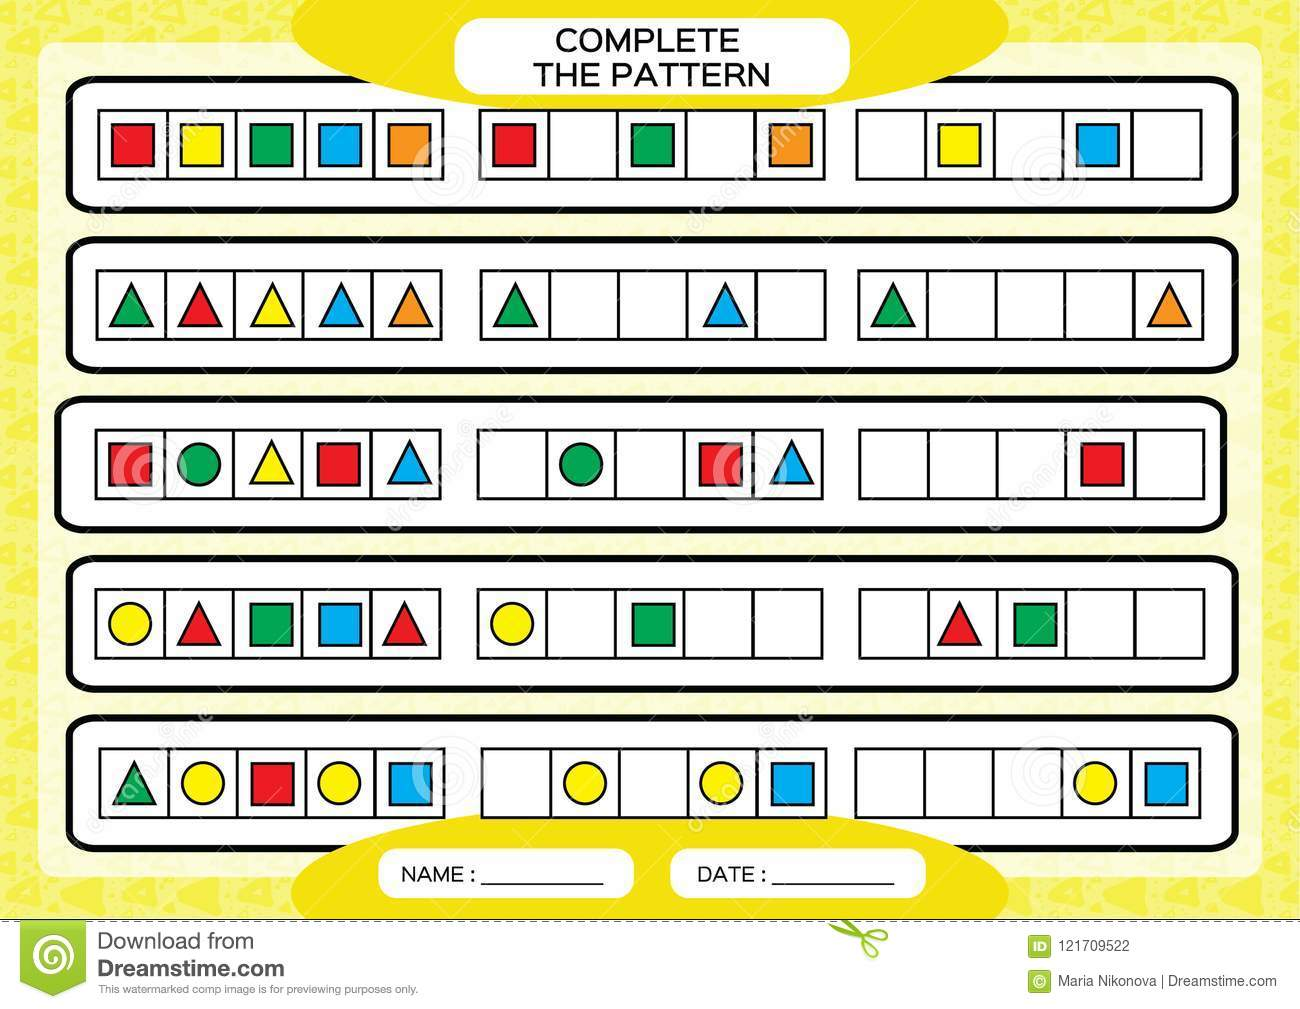 Complete Simple Repeating Patterns Worksheet For Preschool Kids Practicing Motor Skills